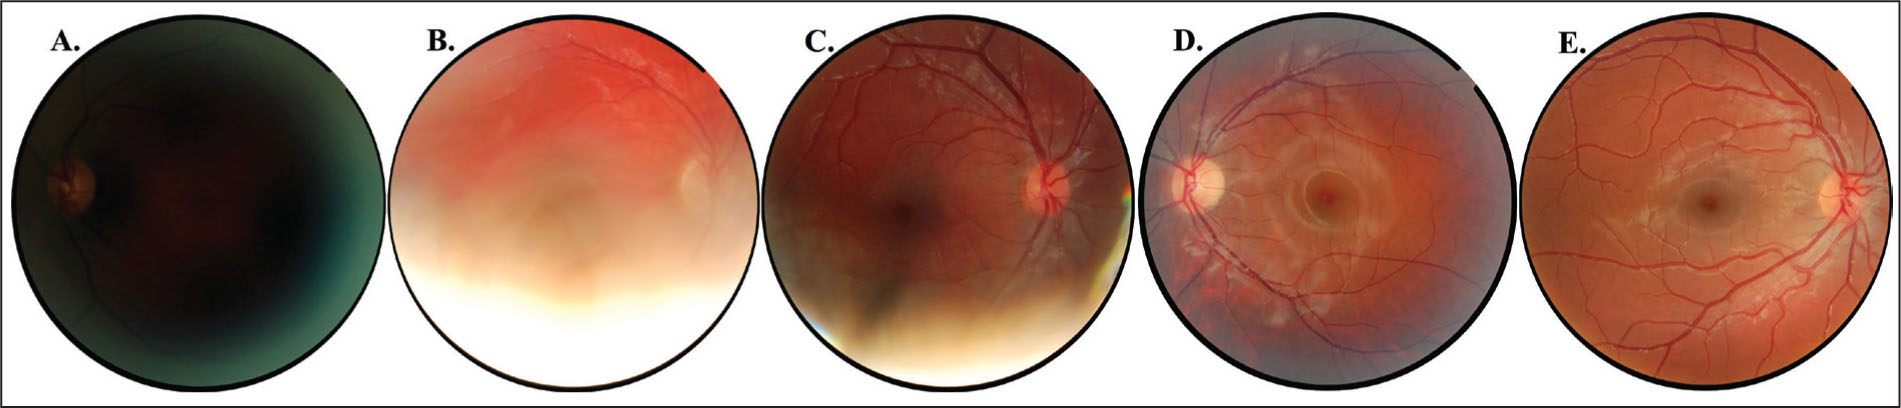 Examples of images obtained during the screening process. (A) Grade 1: Optic nerve is barely visible. Photograph not of clinical value. (B) Grade 2: Optic nerve, superior arcade, and small portion of inferior arcade are seen. Approximately 50% of the fundus is obscured. (C) Grade 3: Optic nerve, macula, and superior arcade are completely visible; majority of the inferior arcade can be evaluated. Approximately 20% of the fundus is obscured. (D) Grade 4: Optic nerve, macula, and superior and inferior arcades are completely visible. Fundus photograph shows minor peripheral image blurring. (E) Grade 5: Optic nerve, macula, and superior and inferior arcades are completely visible. There is no image distortion of any kind.